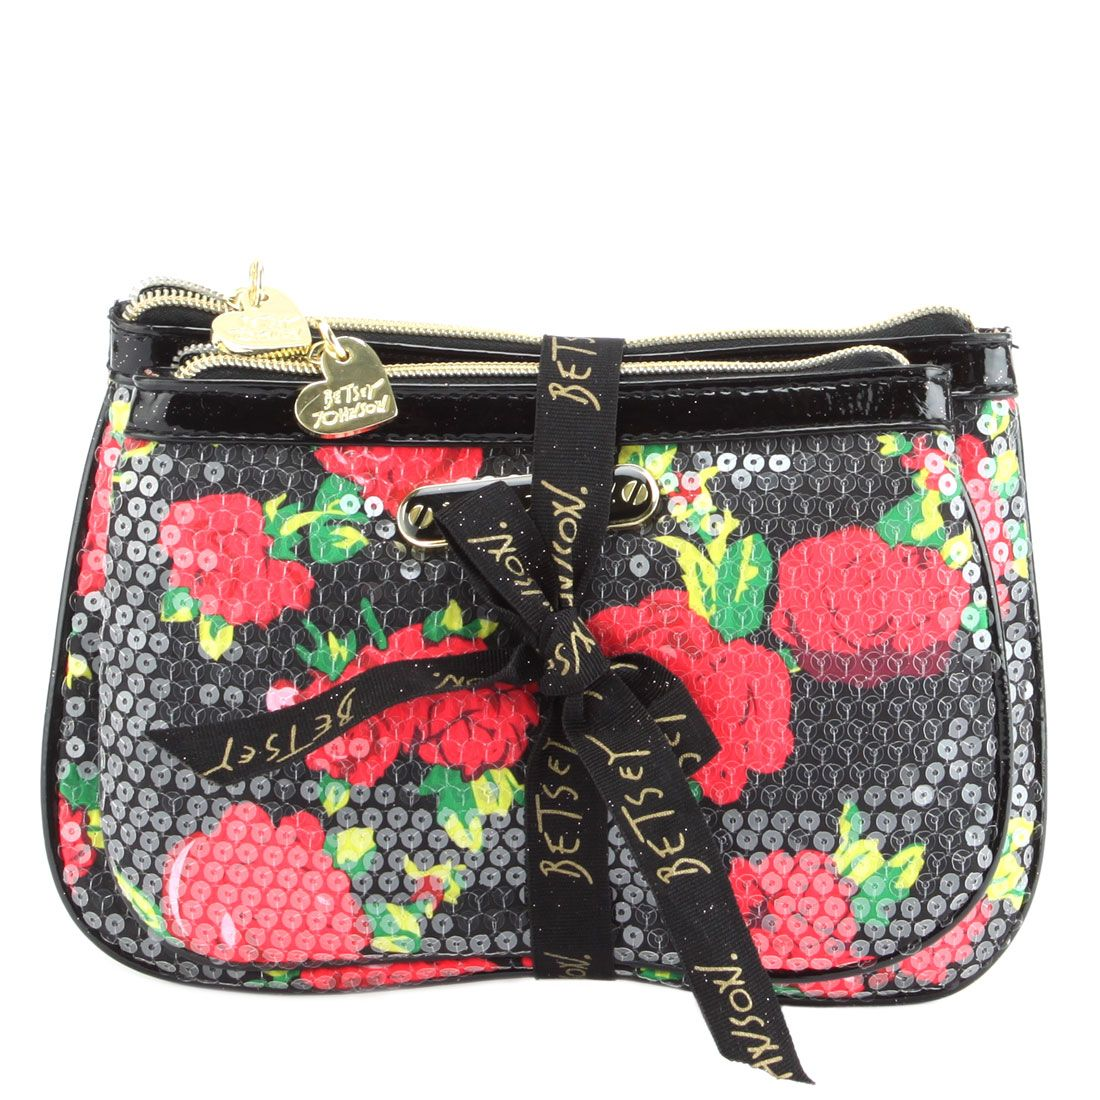 Betsey Johnson 2 Piece Cosmetic Set, Glam up your cosmetic carrying!